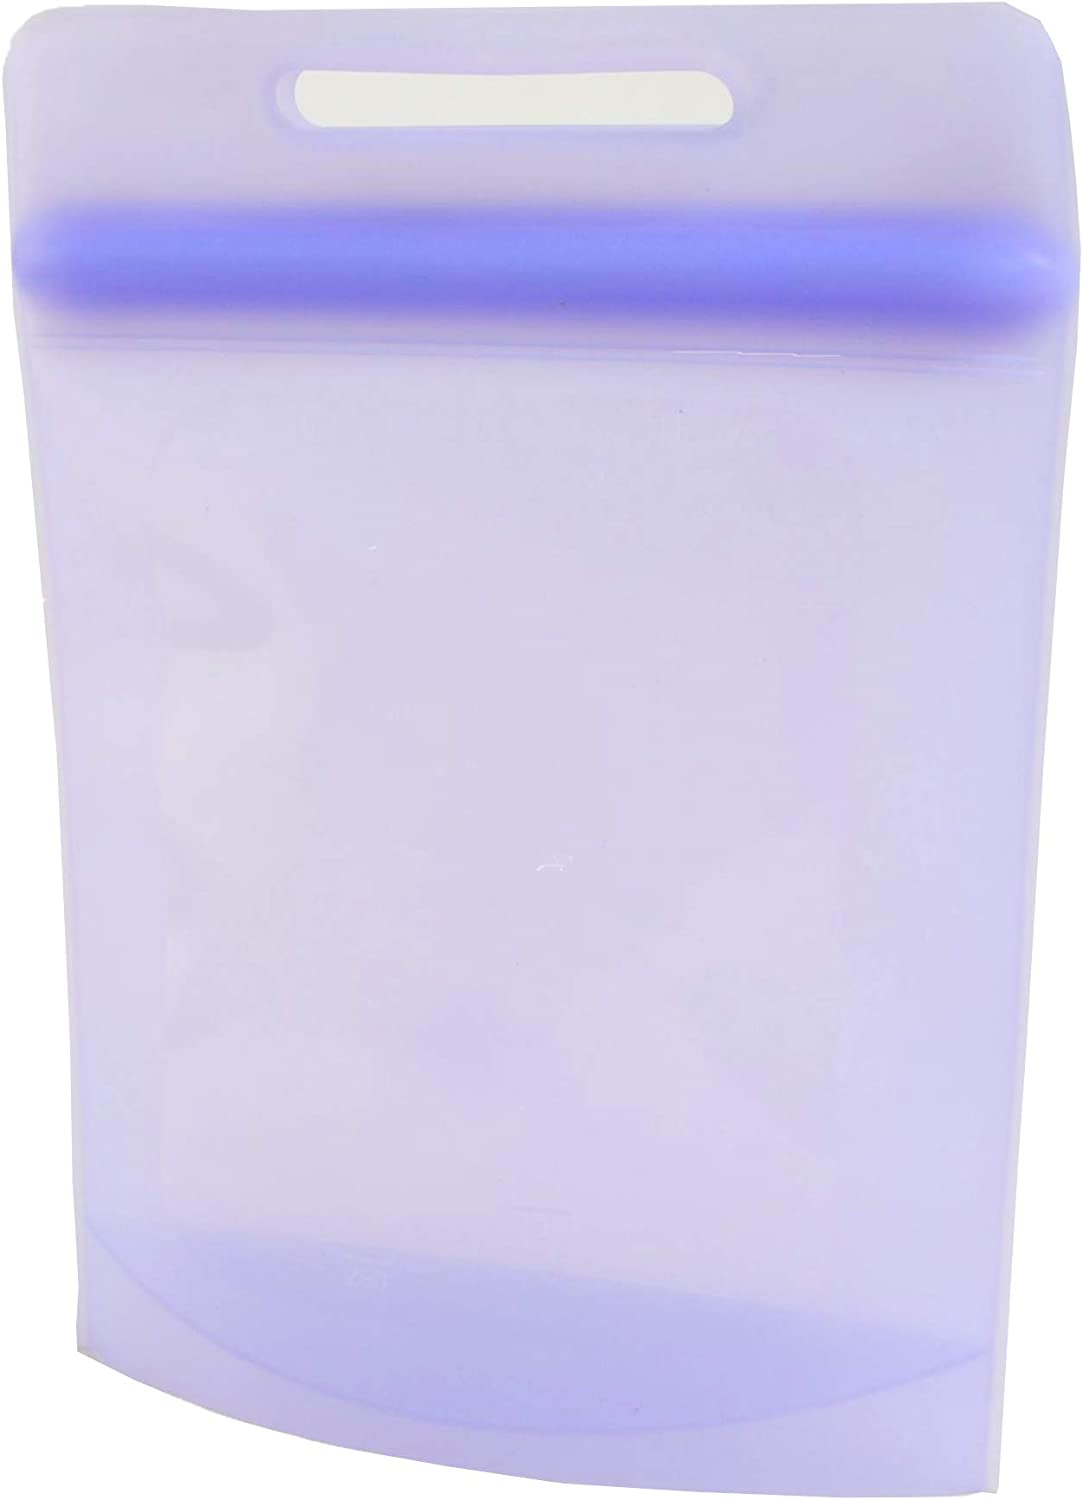 Reusable Ziplock-Bags Silicone Food Storage-Bags - HFLHLL 100% Food Grade Sandwich/Snack/Gallon Bags, Suitable for Sous Vide, Microwave And Freezer, Eco-Friendly And Sustainable, (Lavender,Tote)